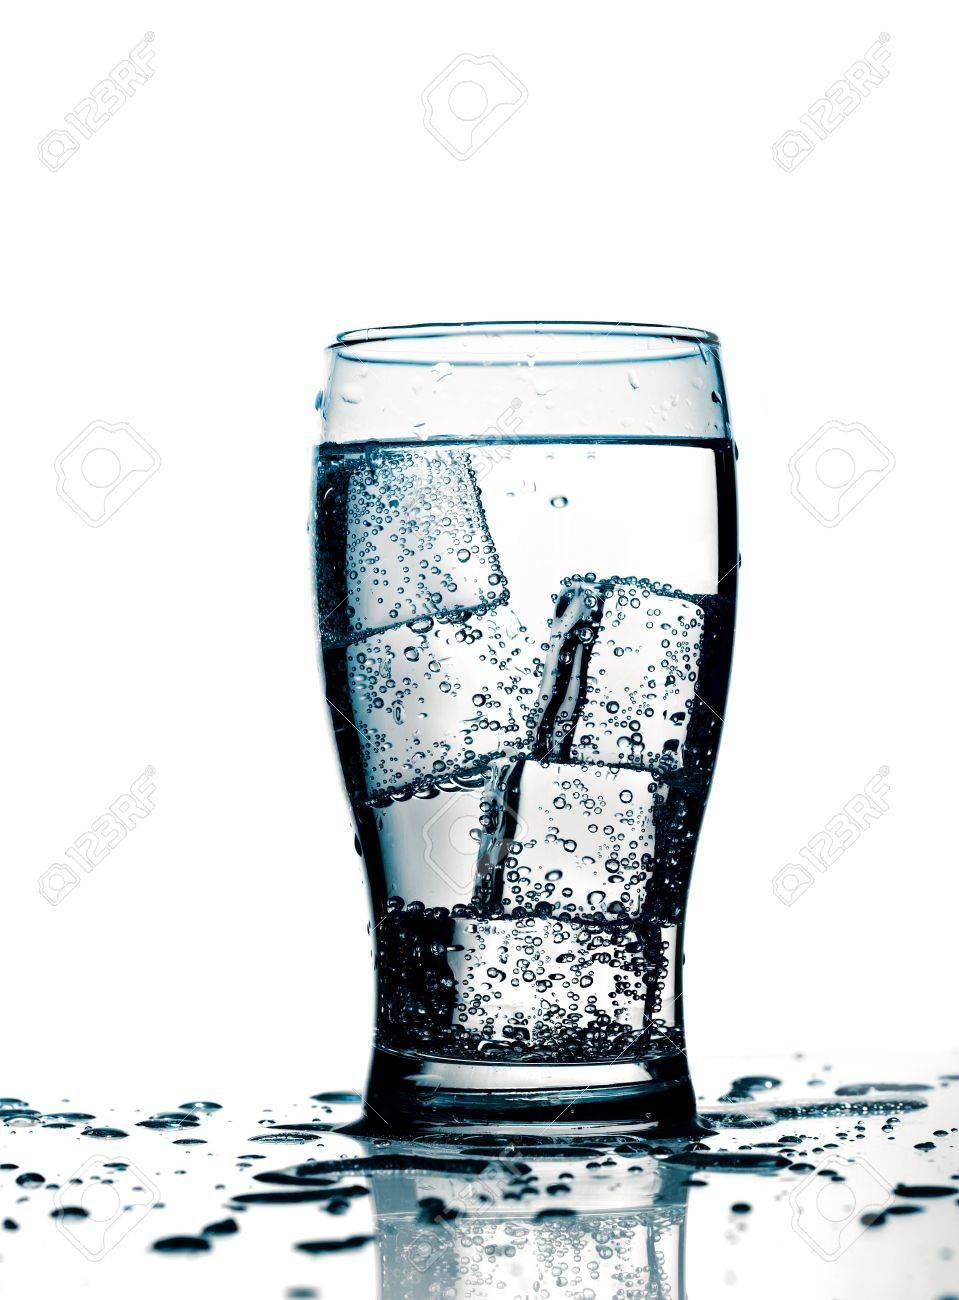 glass with cold purified water and ice, over white background Stock Photo - 9112722